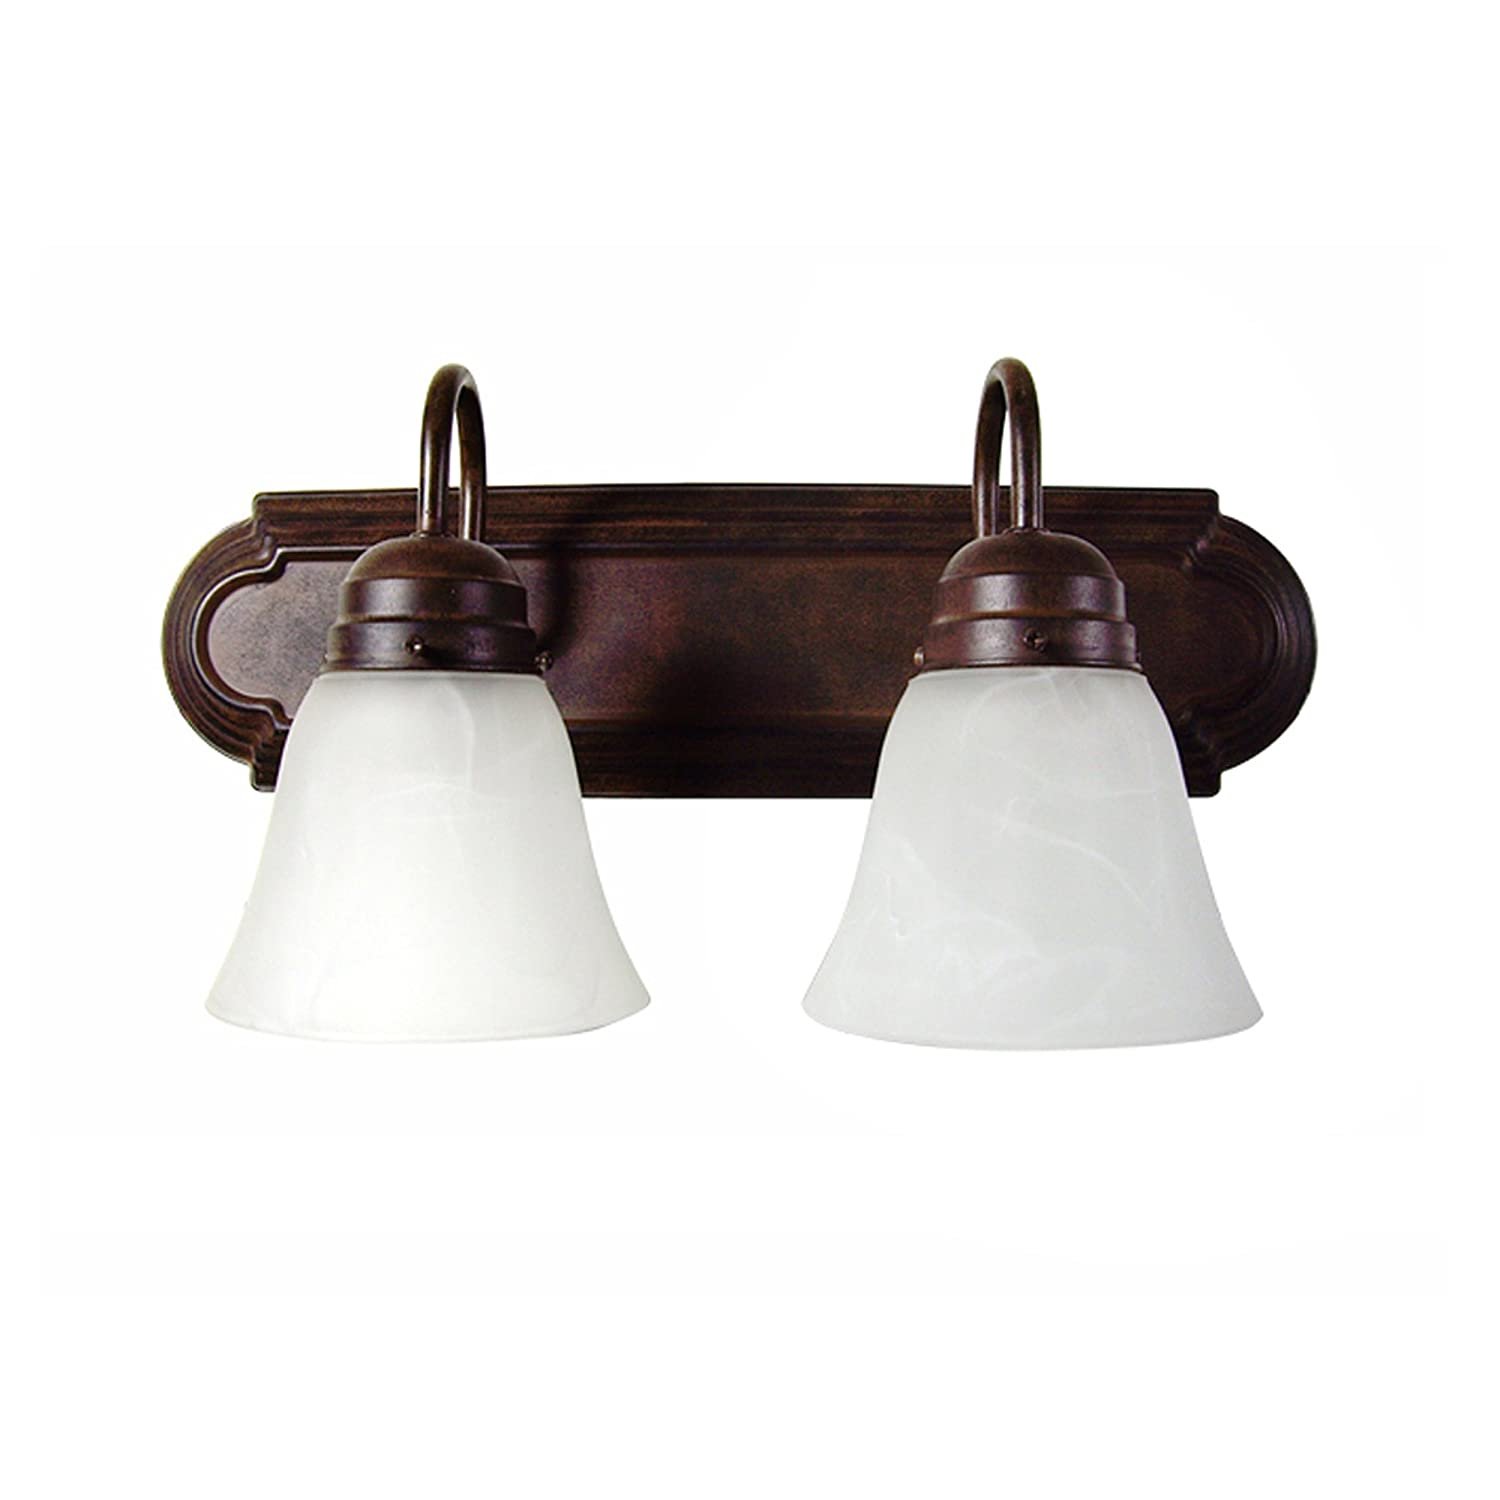 AA Warehousing L22-DB Modern, Transitional, Traditional 2 Light Bathroom Vanity Fixture Dark Brown with White Glass by